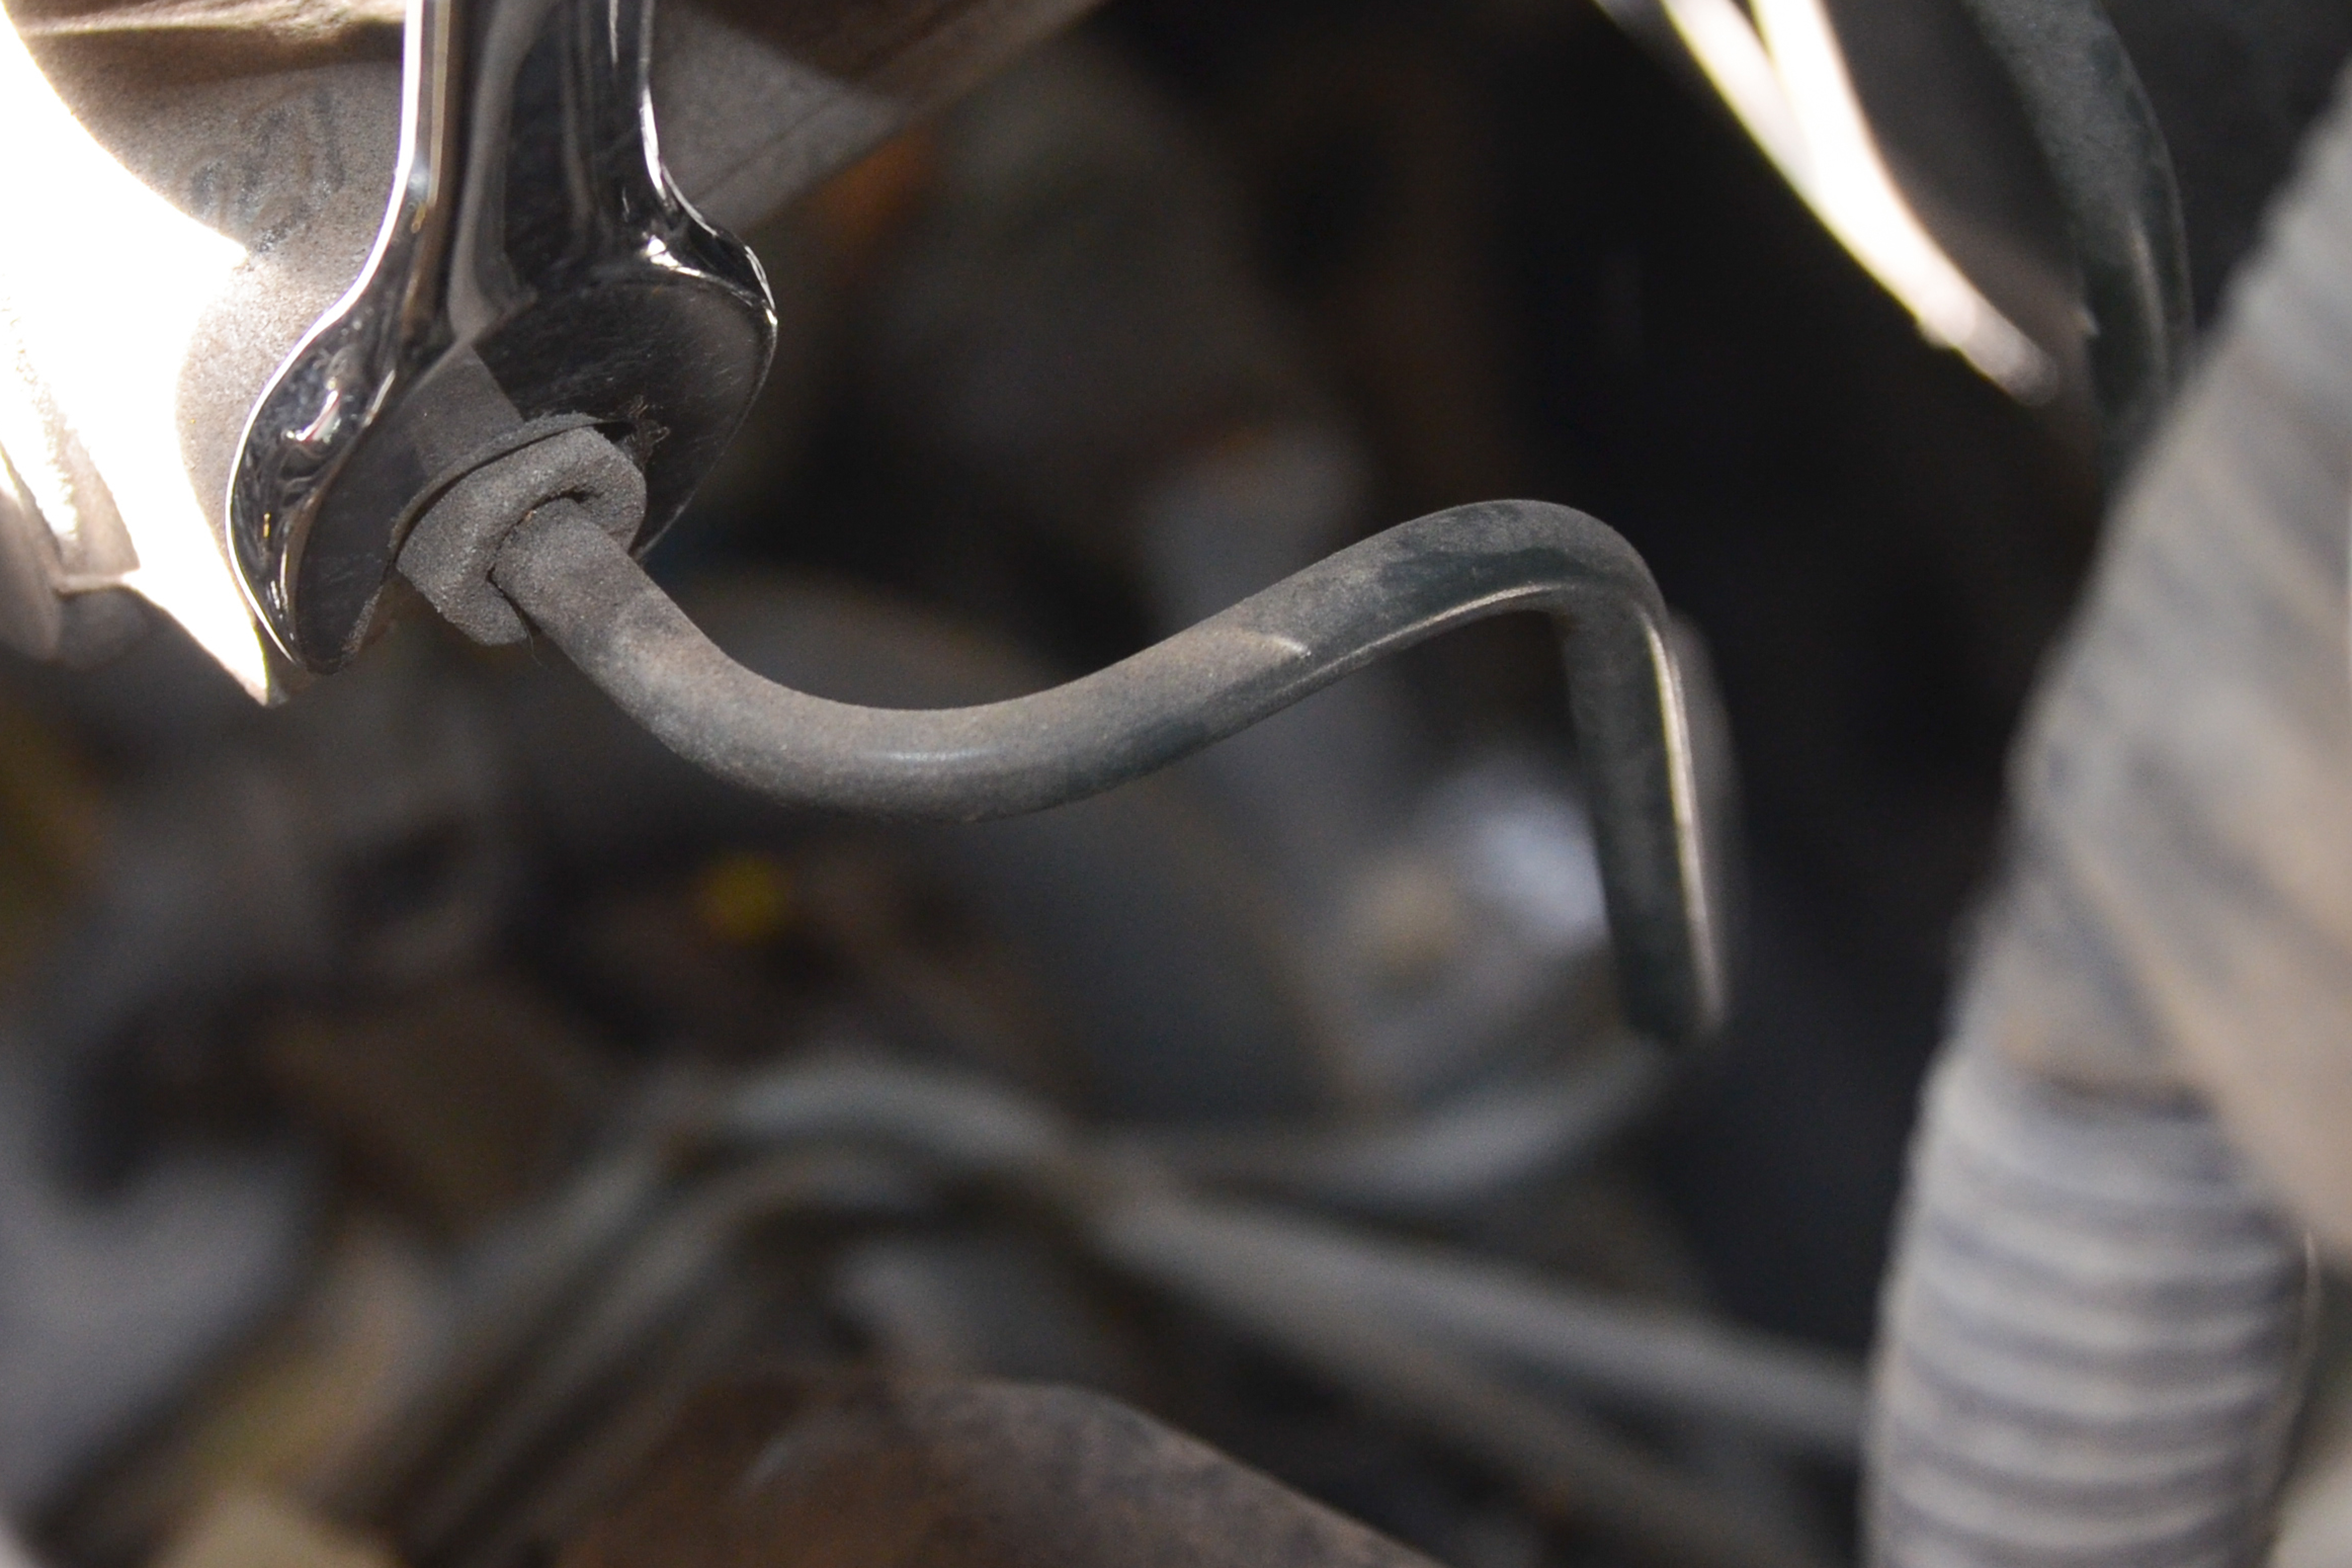 How to Bleed the Master Cylinder Without Removing it From a